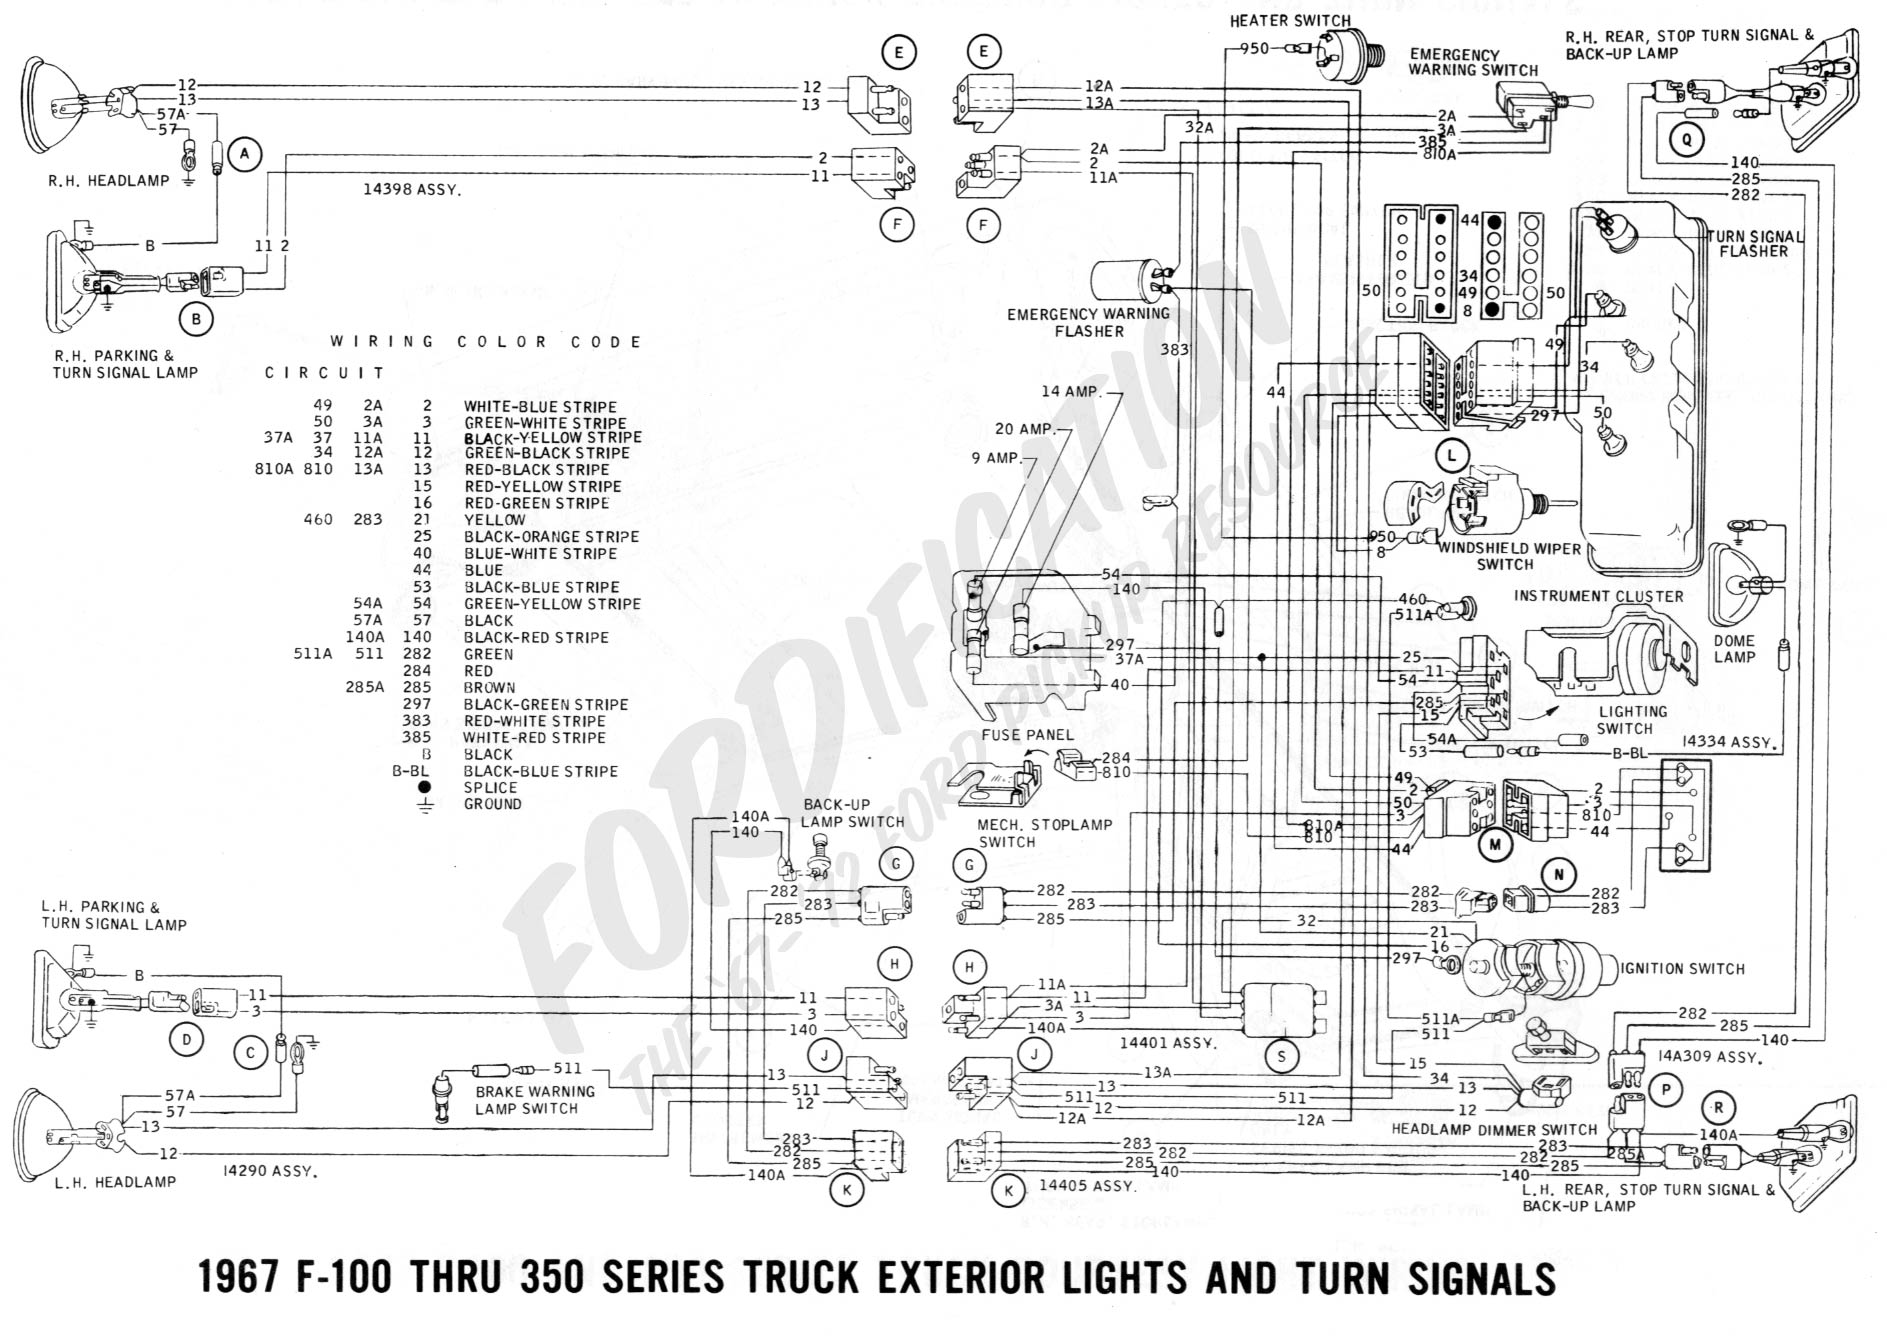 Roof Schematics - Auto Electrical Wiring Diagram on ballast resistor wiring diagram, 1956 oldsmobile wiring diagram, 1967 dodge wiring diagram, 1957 dodge wiring diagram, dodge voltage regulator wiring diagram, 1965 lincoln wiring diagram, 1960 pontiac wiring diagram, 1969 cadillac wiring diagram, 1955 dodge wiring diagram, 1965 dodge wiring diagram, dodge truck wiring diagram, 1953 dodge wiring diagram, 1970 dodge alternator wiring, 1955 plymouth wiring diagram, 1954 dodge wiring diagram, 1961 cadillac wiring diagram, 1974 dodge wiring diagram, electrical circuit wiring diagram, 1958 dodge wiring diagram, 1957 plymouth wiring diagram,